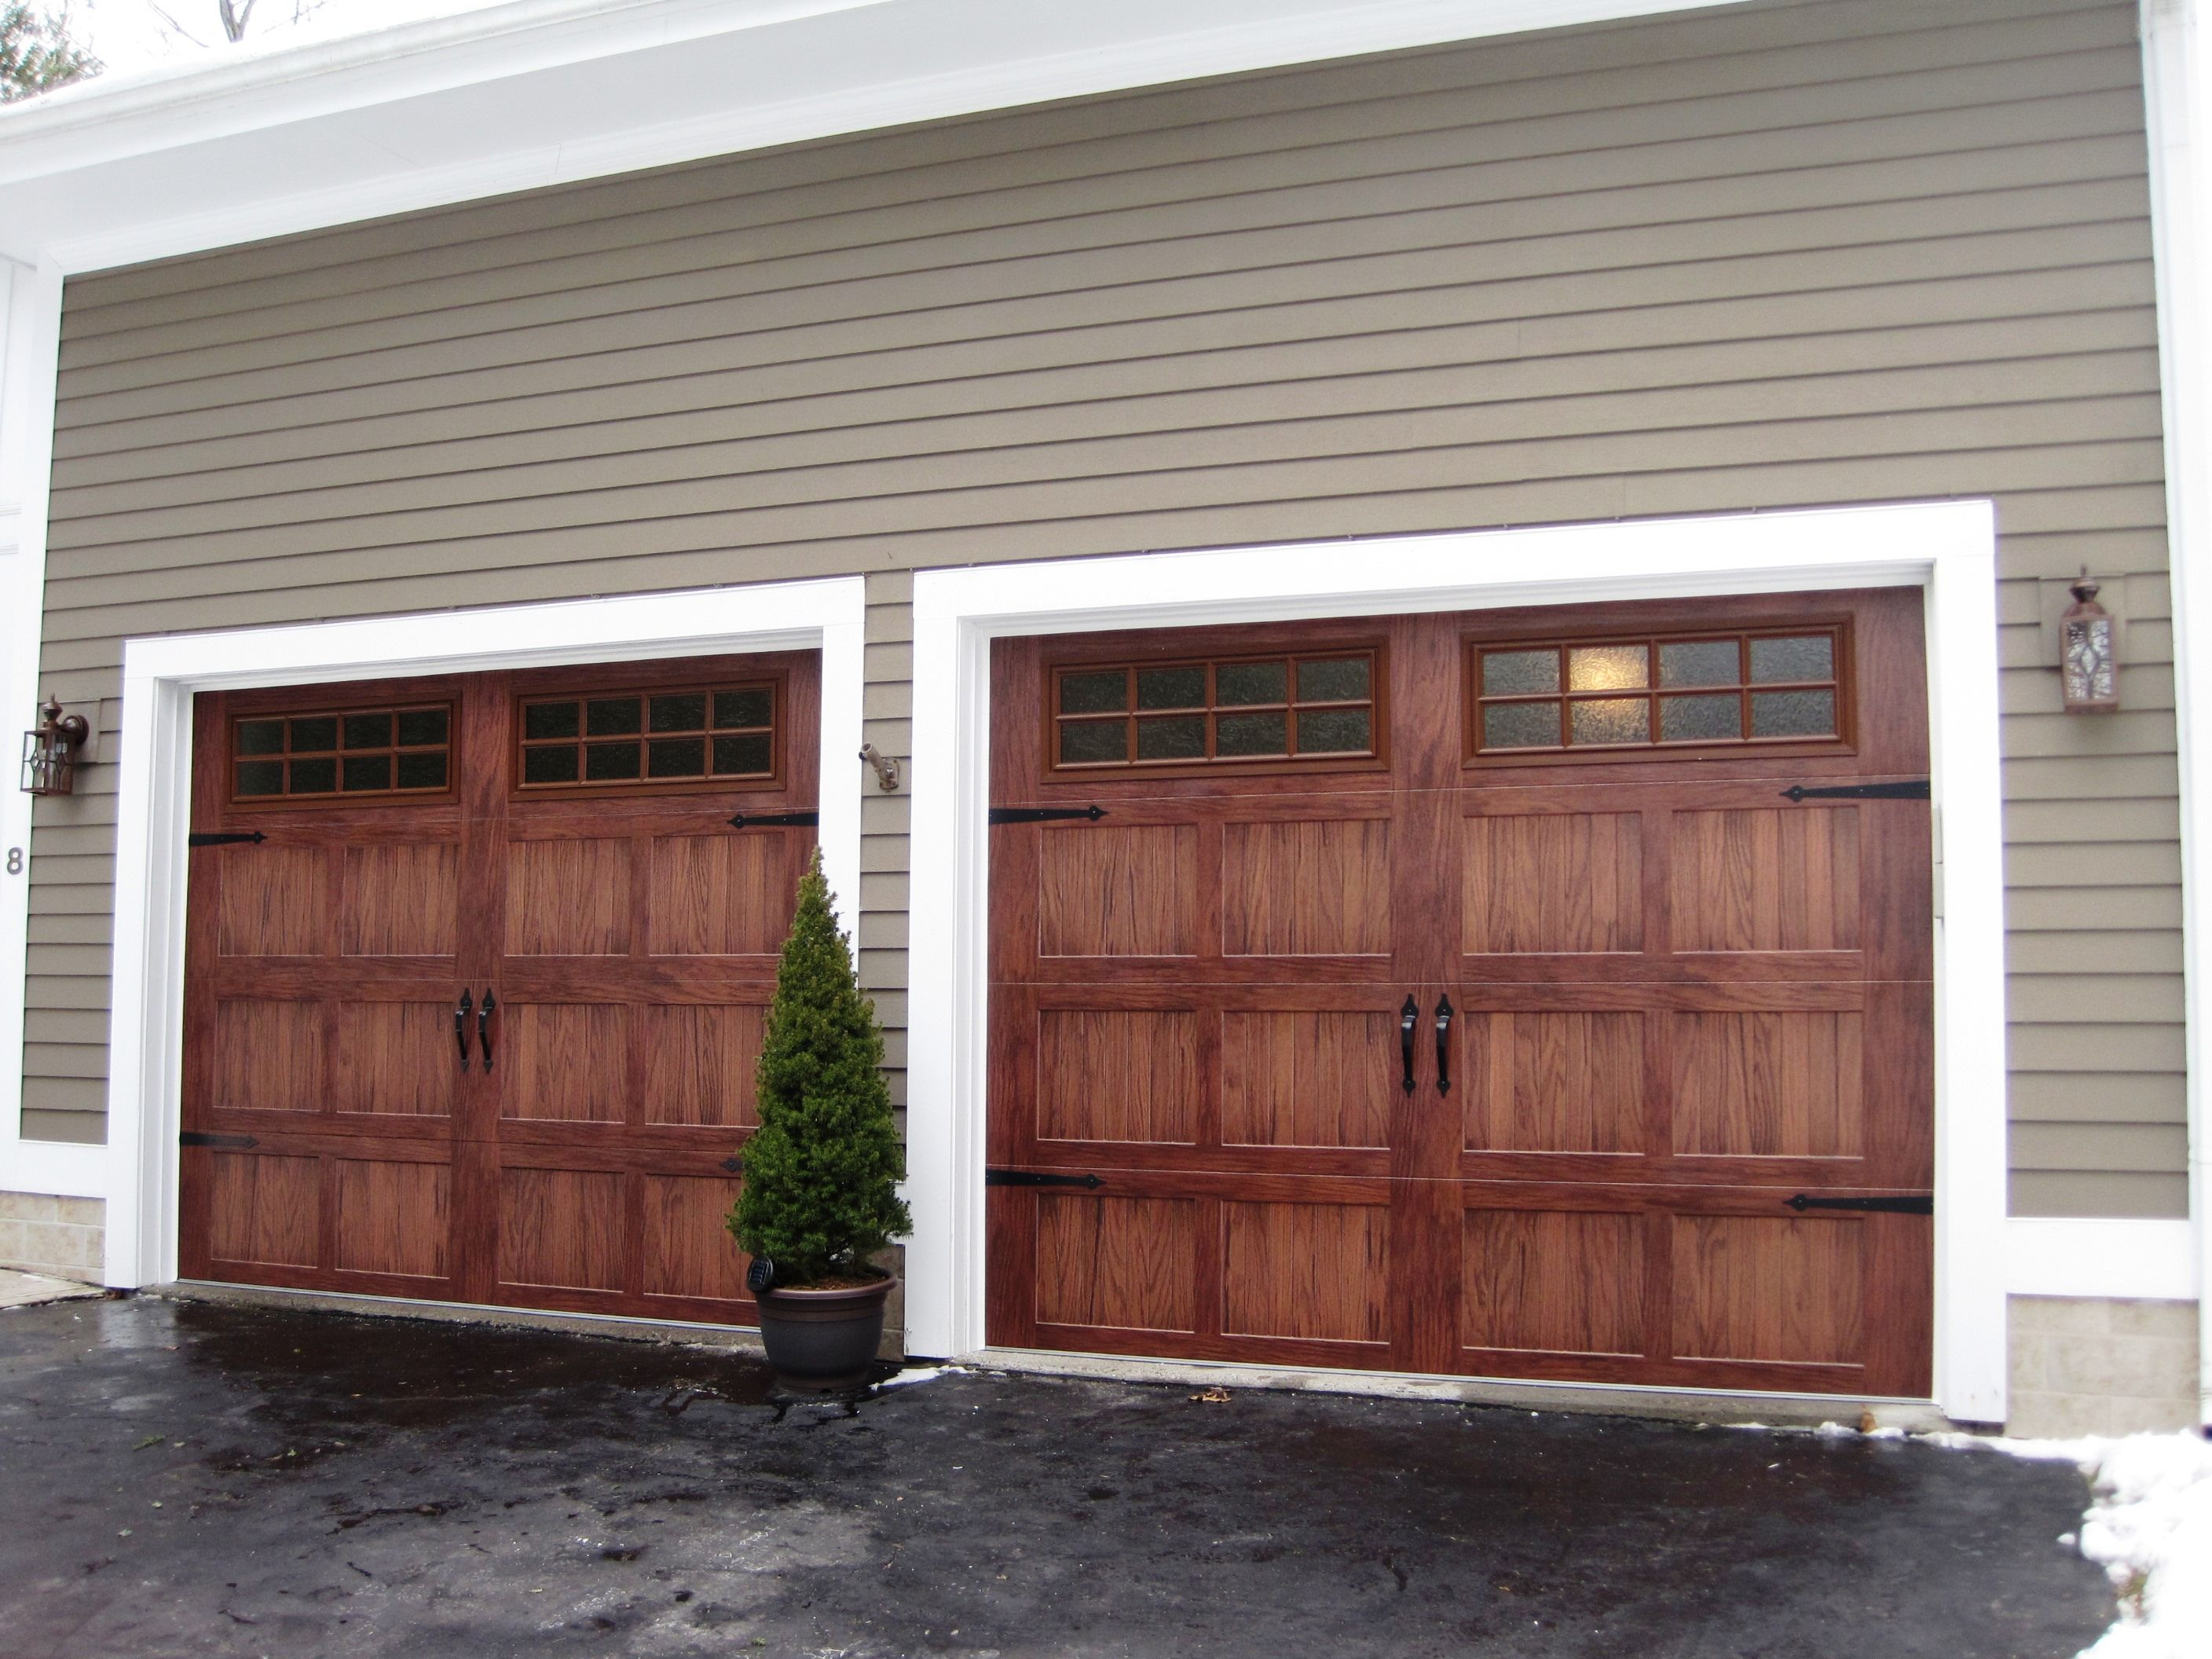 House with wood garage door - Metal Garage Doors That Look Like Wood For Our Barn Accents Woodtones By C H I Overhead